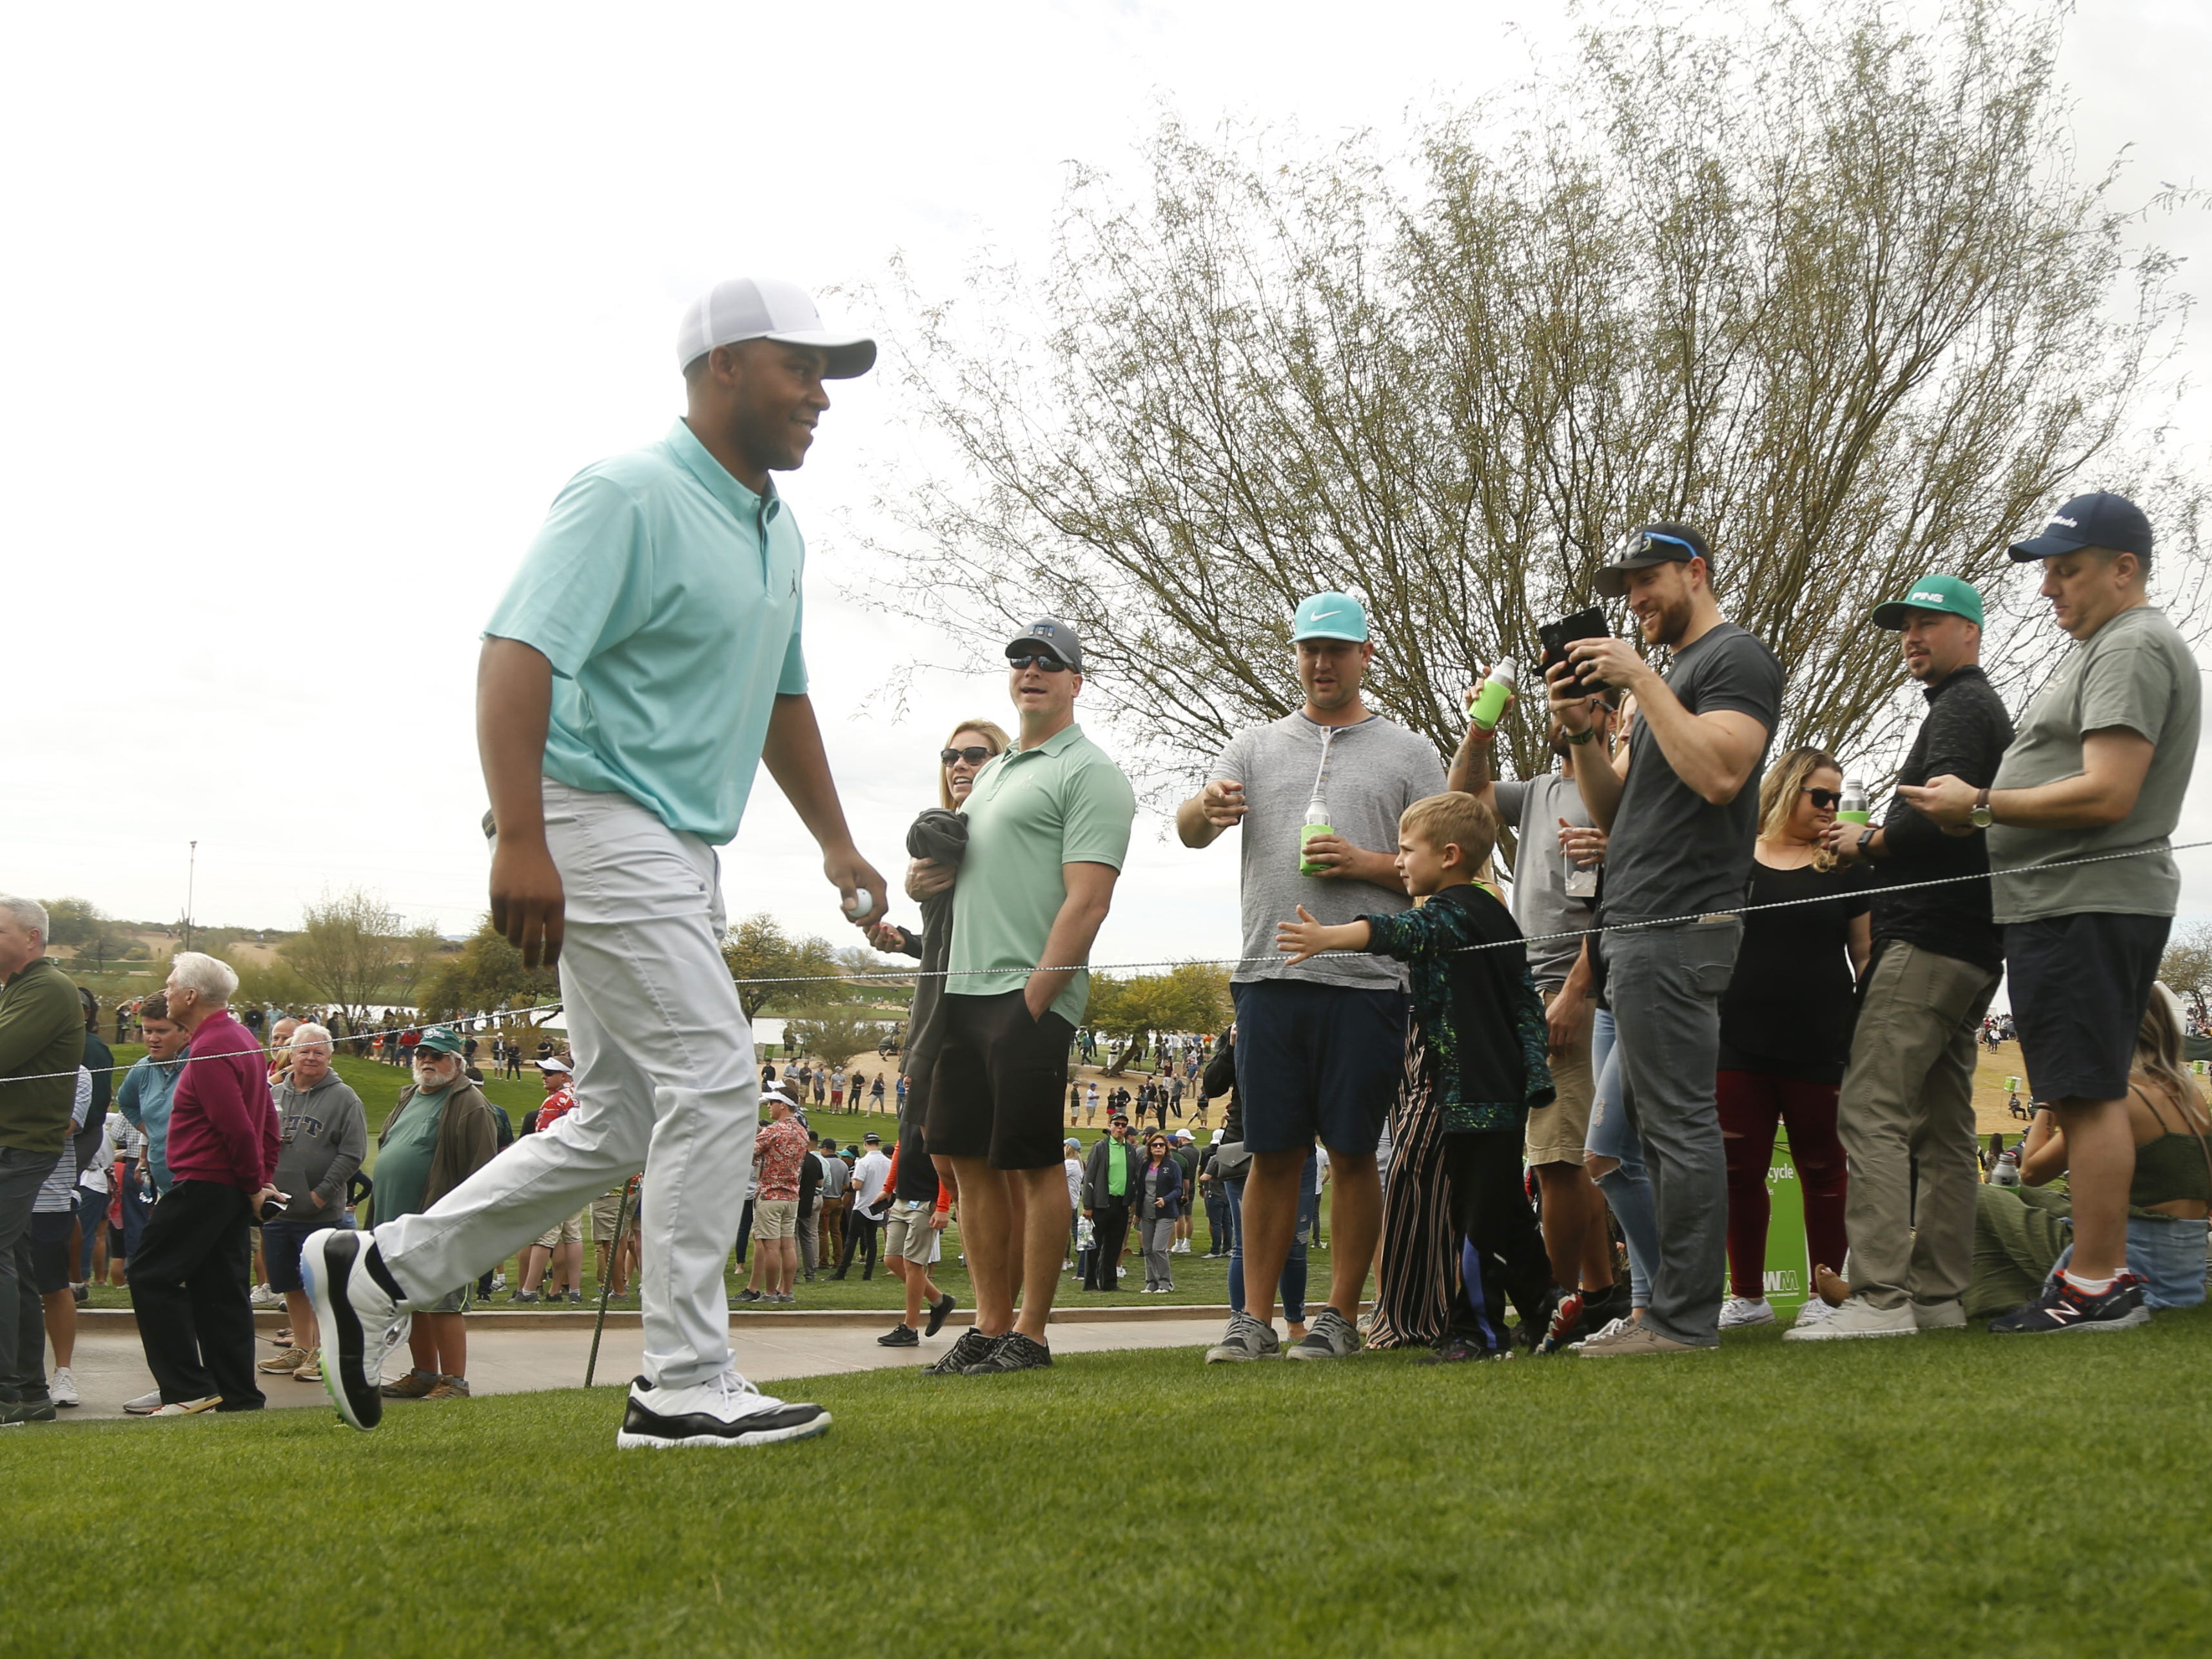 Harold Varner III walks up to the 8th tee box during the third round of the Waste Management Phoenix Open at TPC Scottsdale in Scottsdale, Ariz. on February 2, 2019.